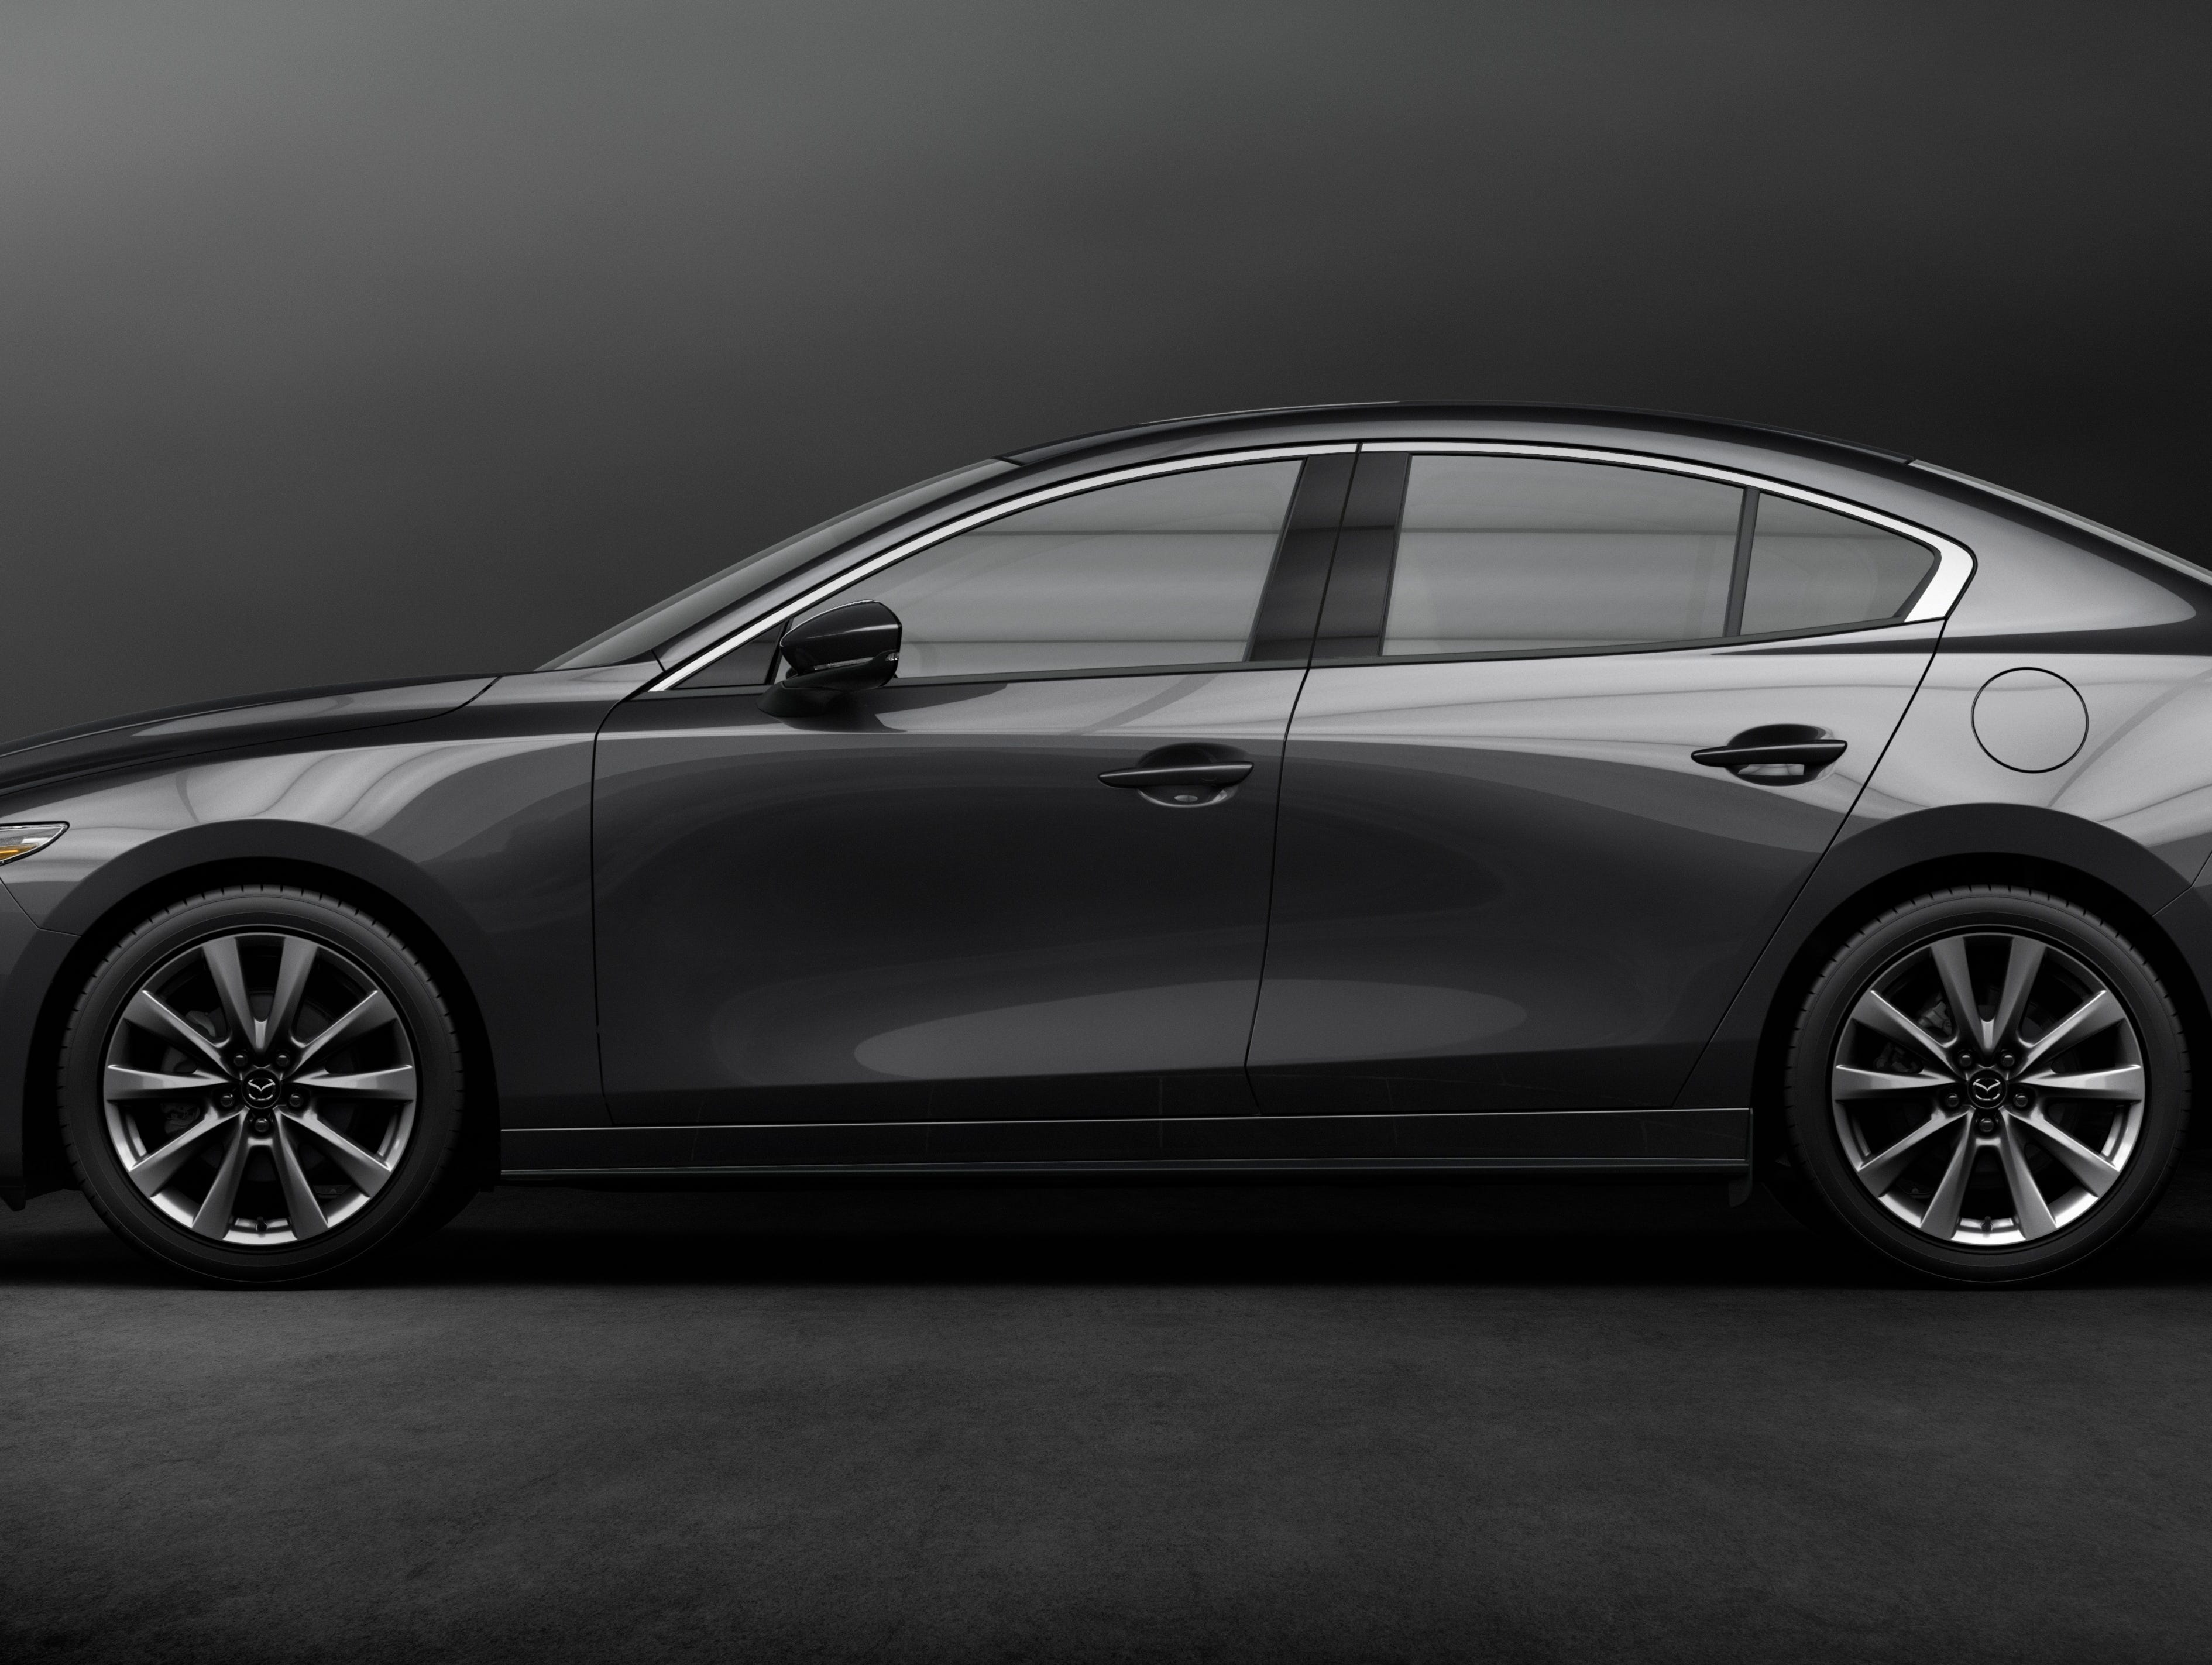 The all-new Mazda3 uses a new type of engine that combines gasoline and diesel technology.